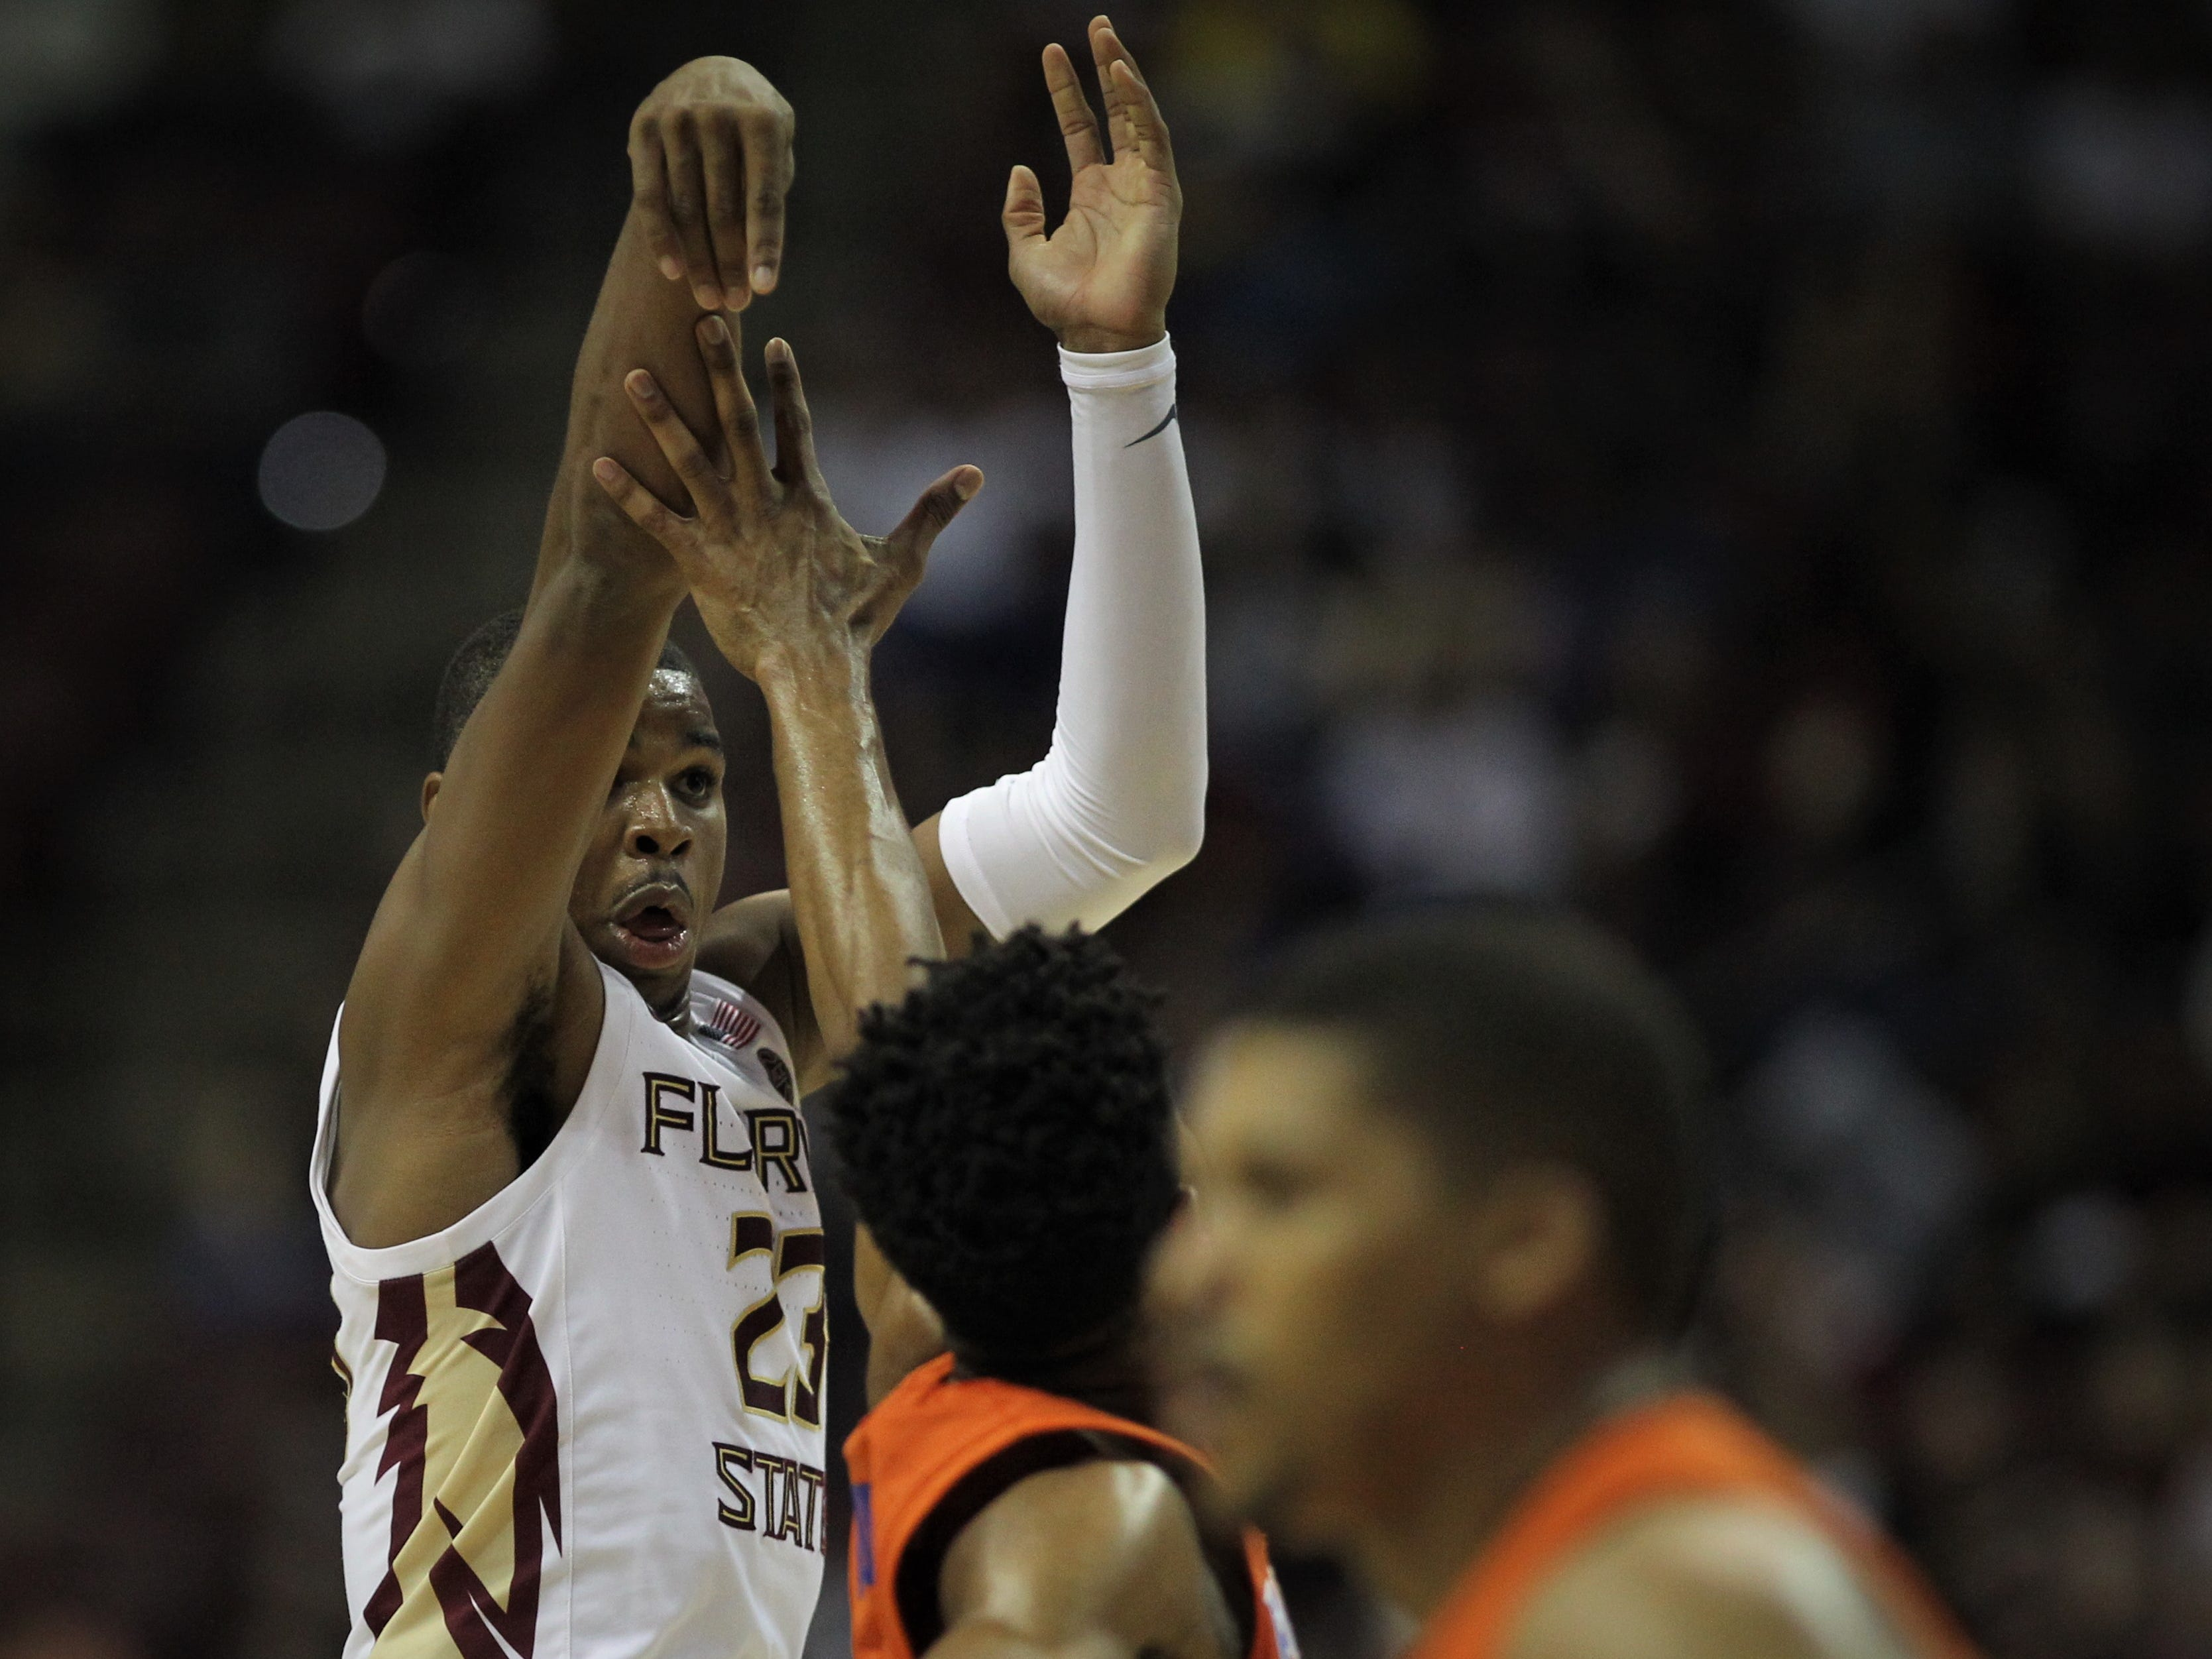 Florida State's M.J. Walker watches a 3-pointer during the Sunshine Showdown game against Florida on Tuesday at the Tucker Civic Center.